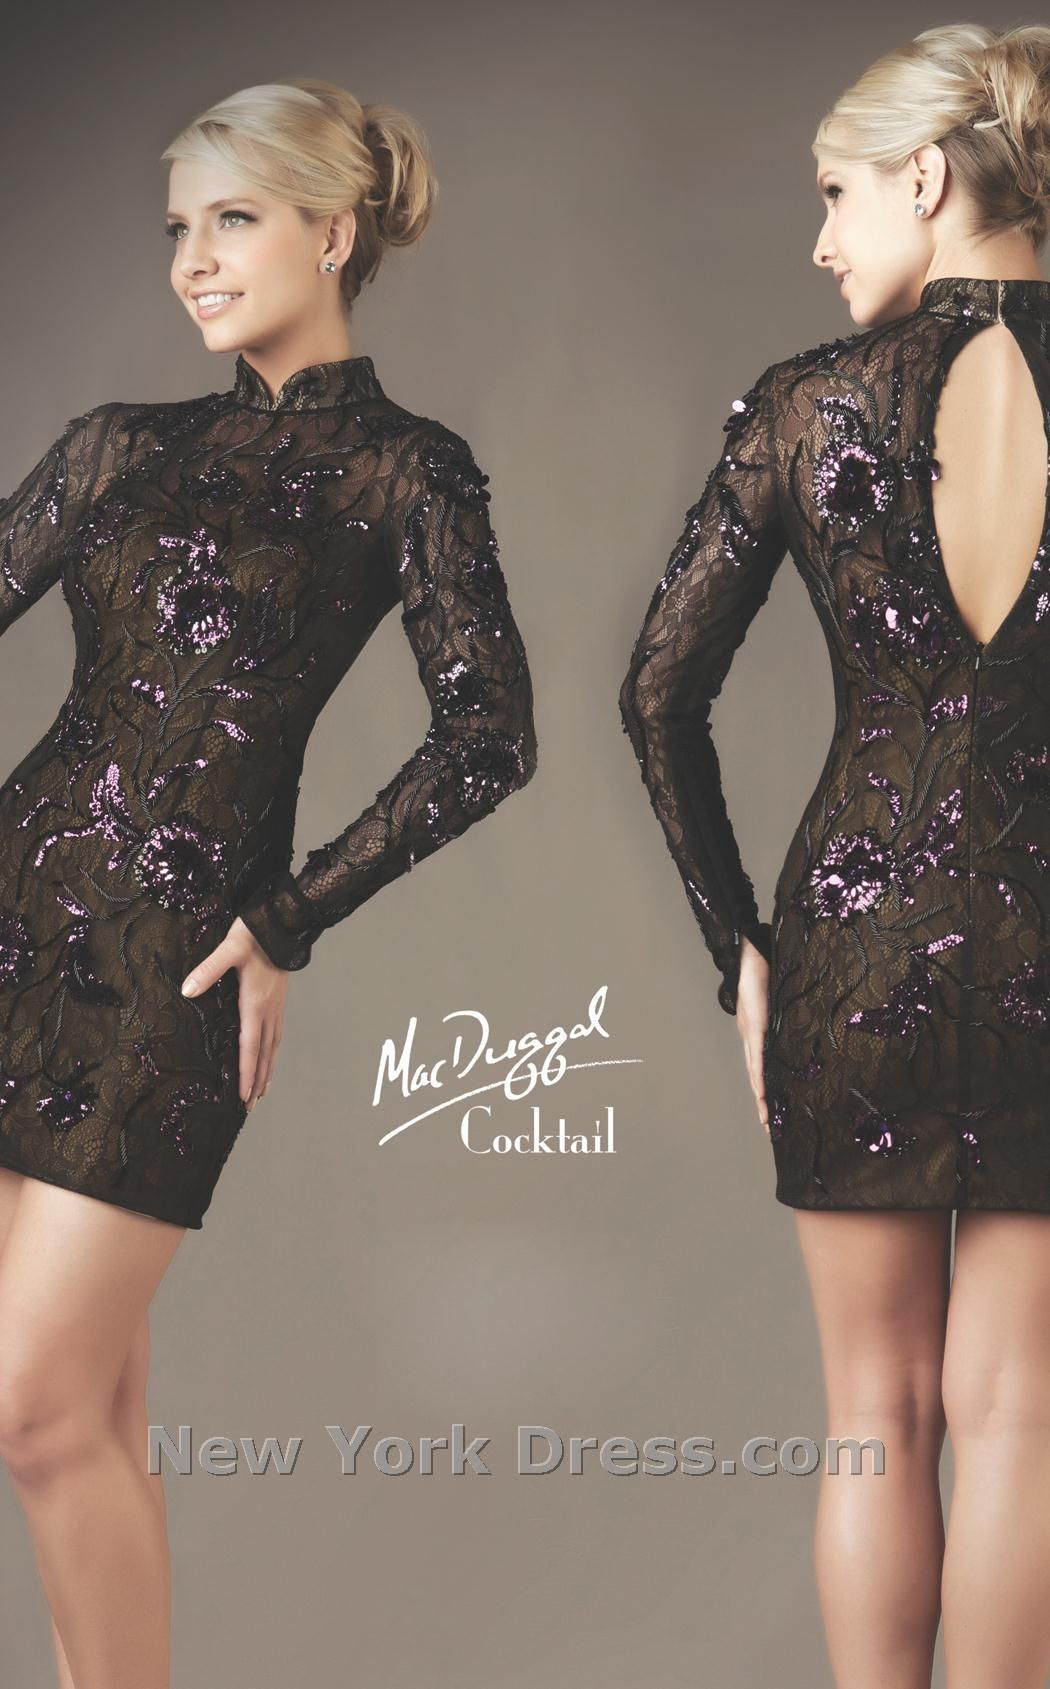 Ornately embroidered mini by mac duggal cocktail minidress with